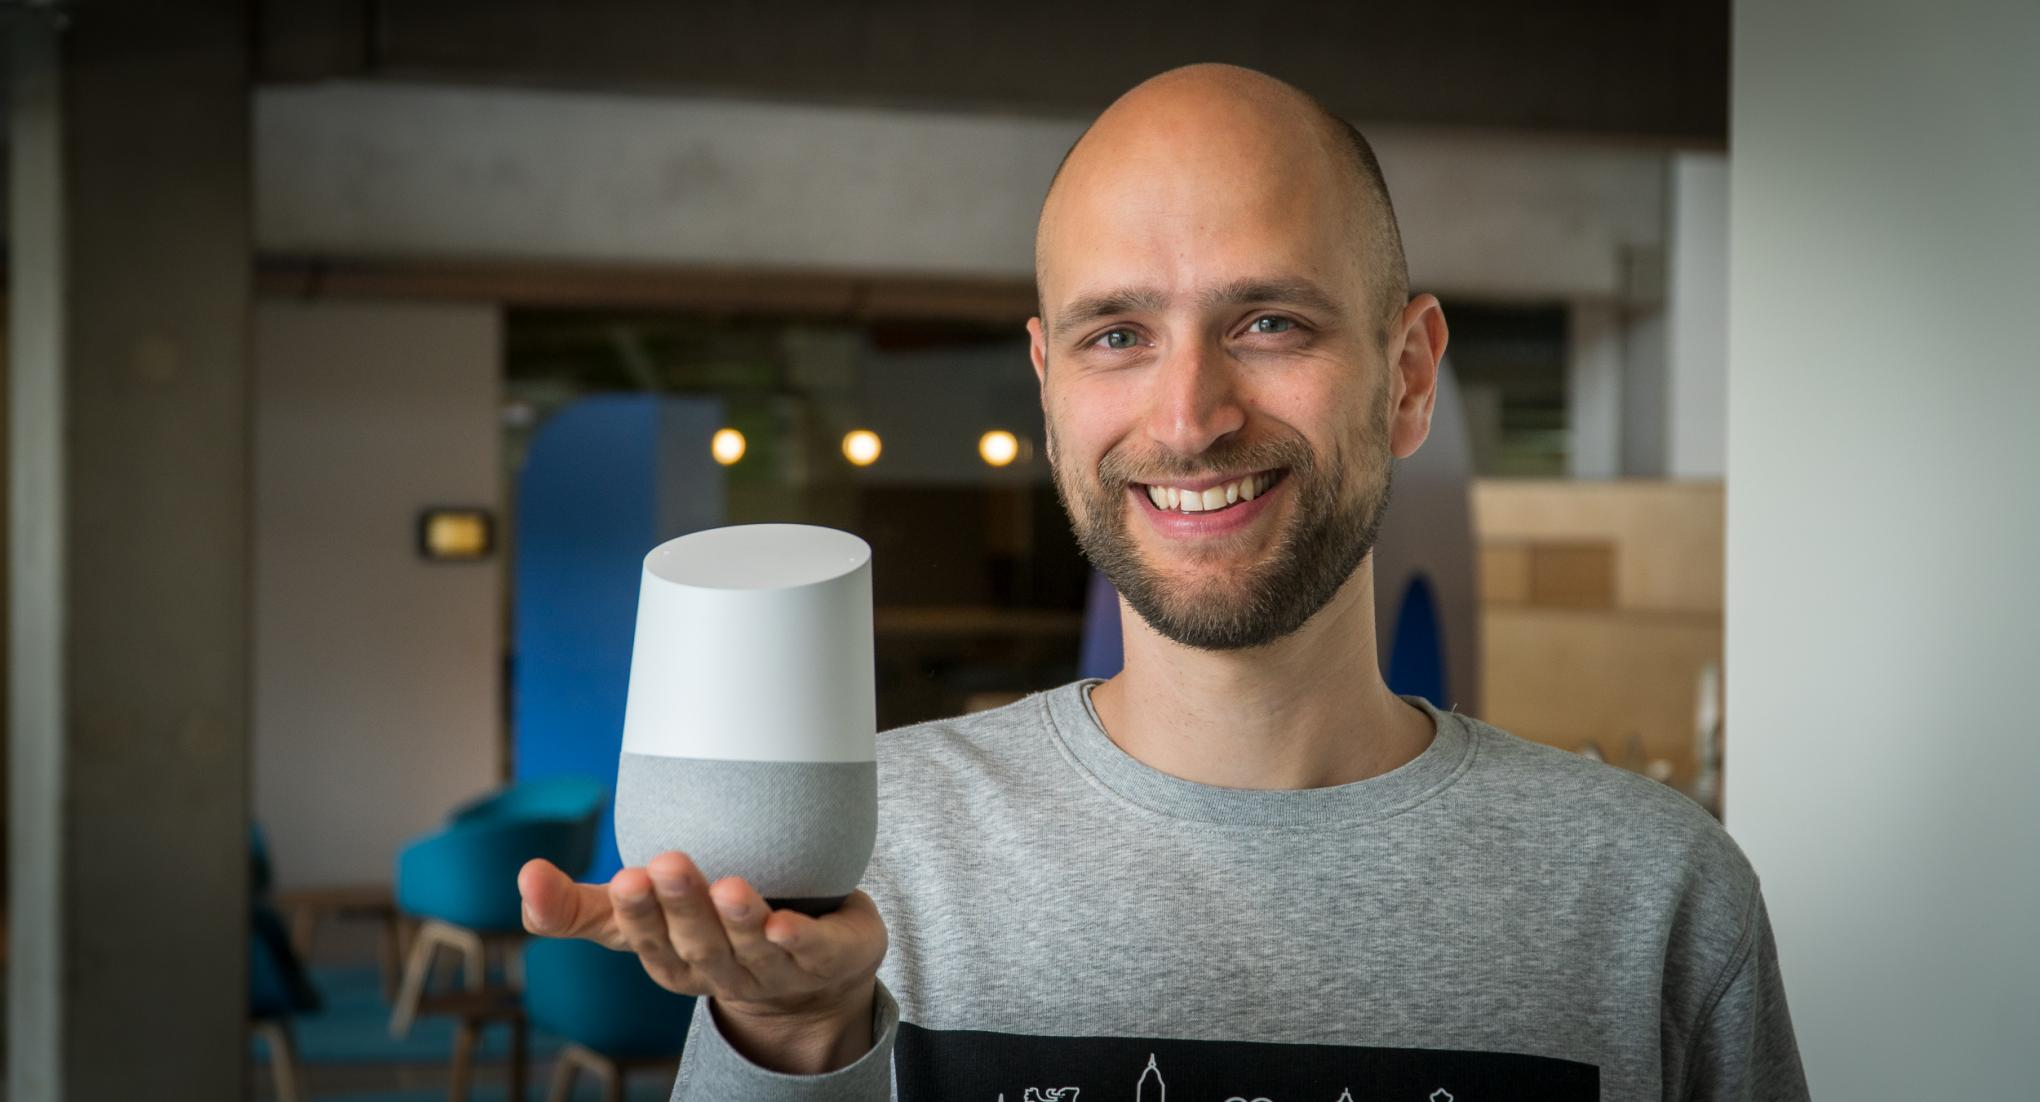 Pieter Moons en Google Home